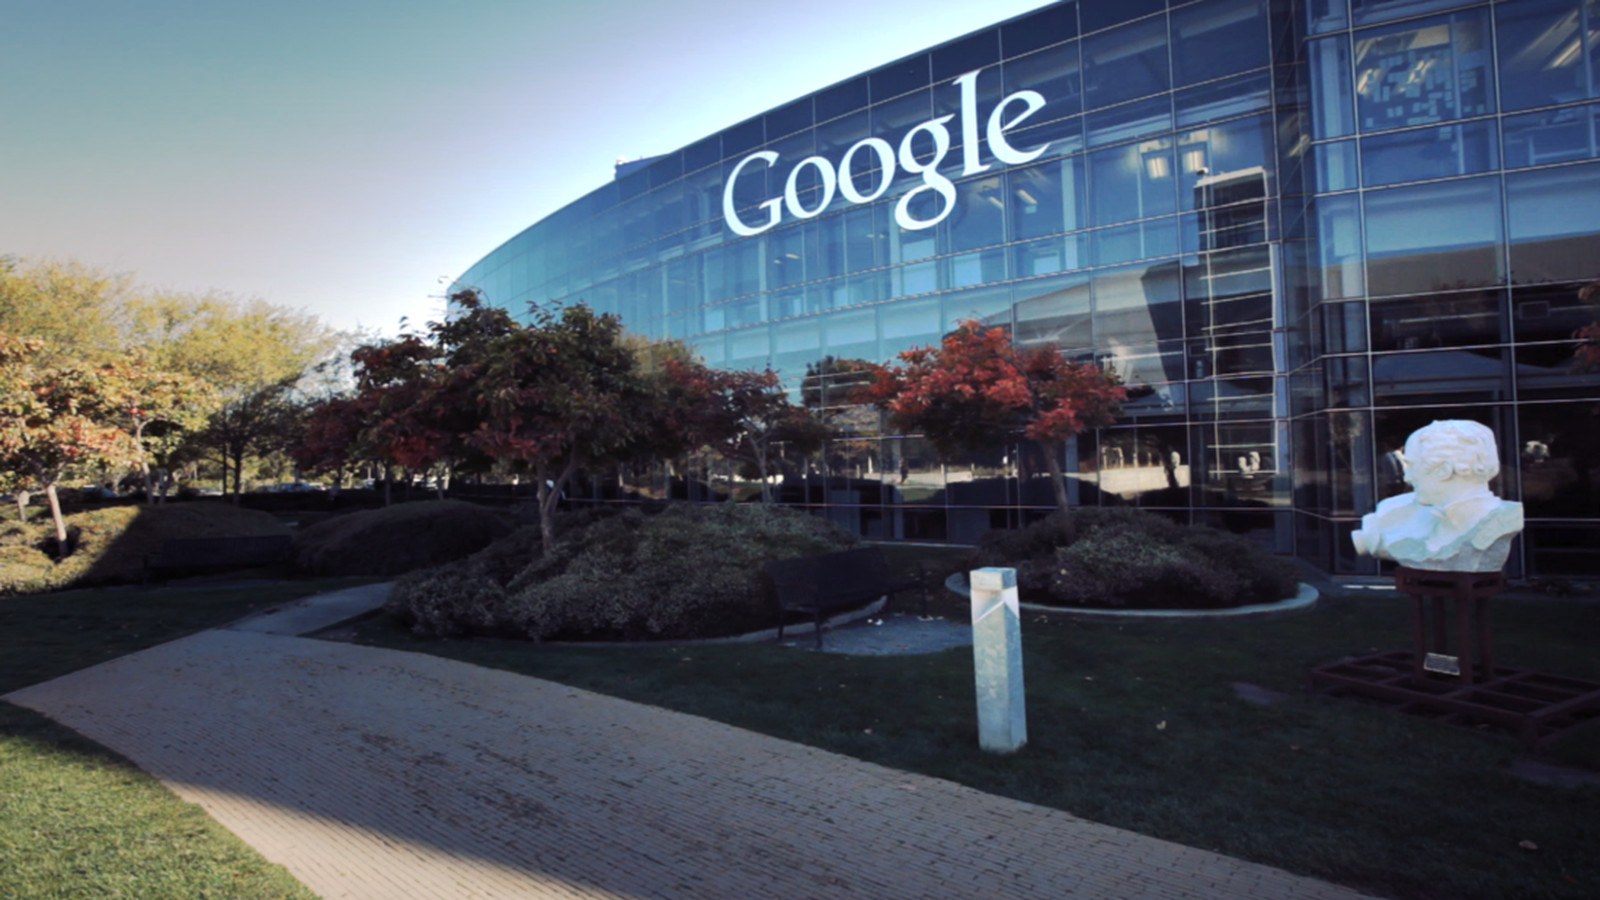 A Google Employee Wrote an Anti-diversity 'manifesto' That's Going Viral Inside the Company